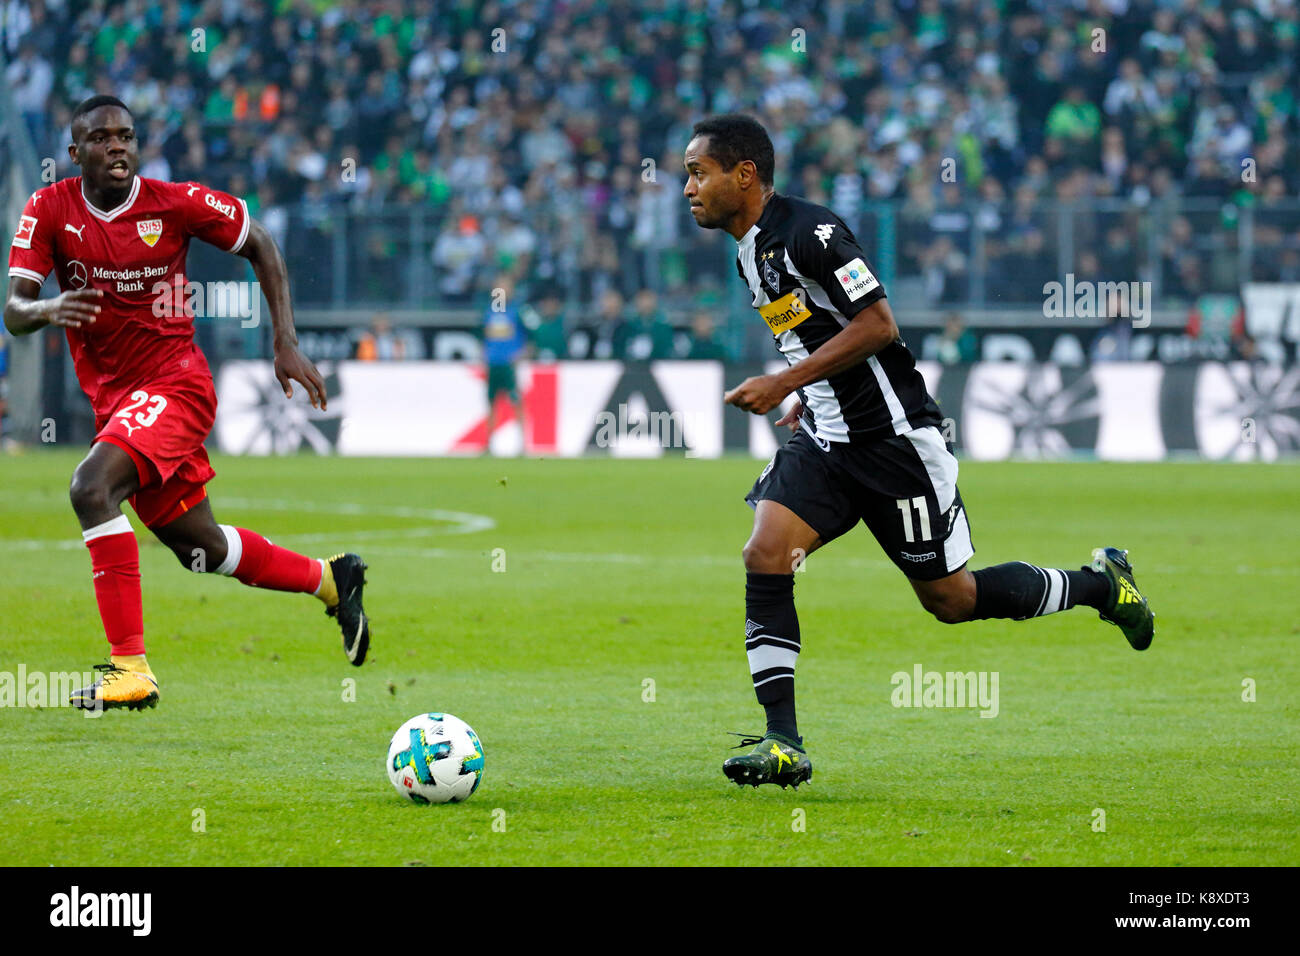 sports, football, Bundesliga, 2017/2018, Borussia Moenchengladbach vs VfB Stuttgart 2:0, scene of the match, Raffael - Stock Image